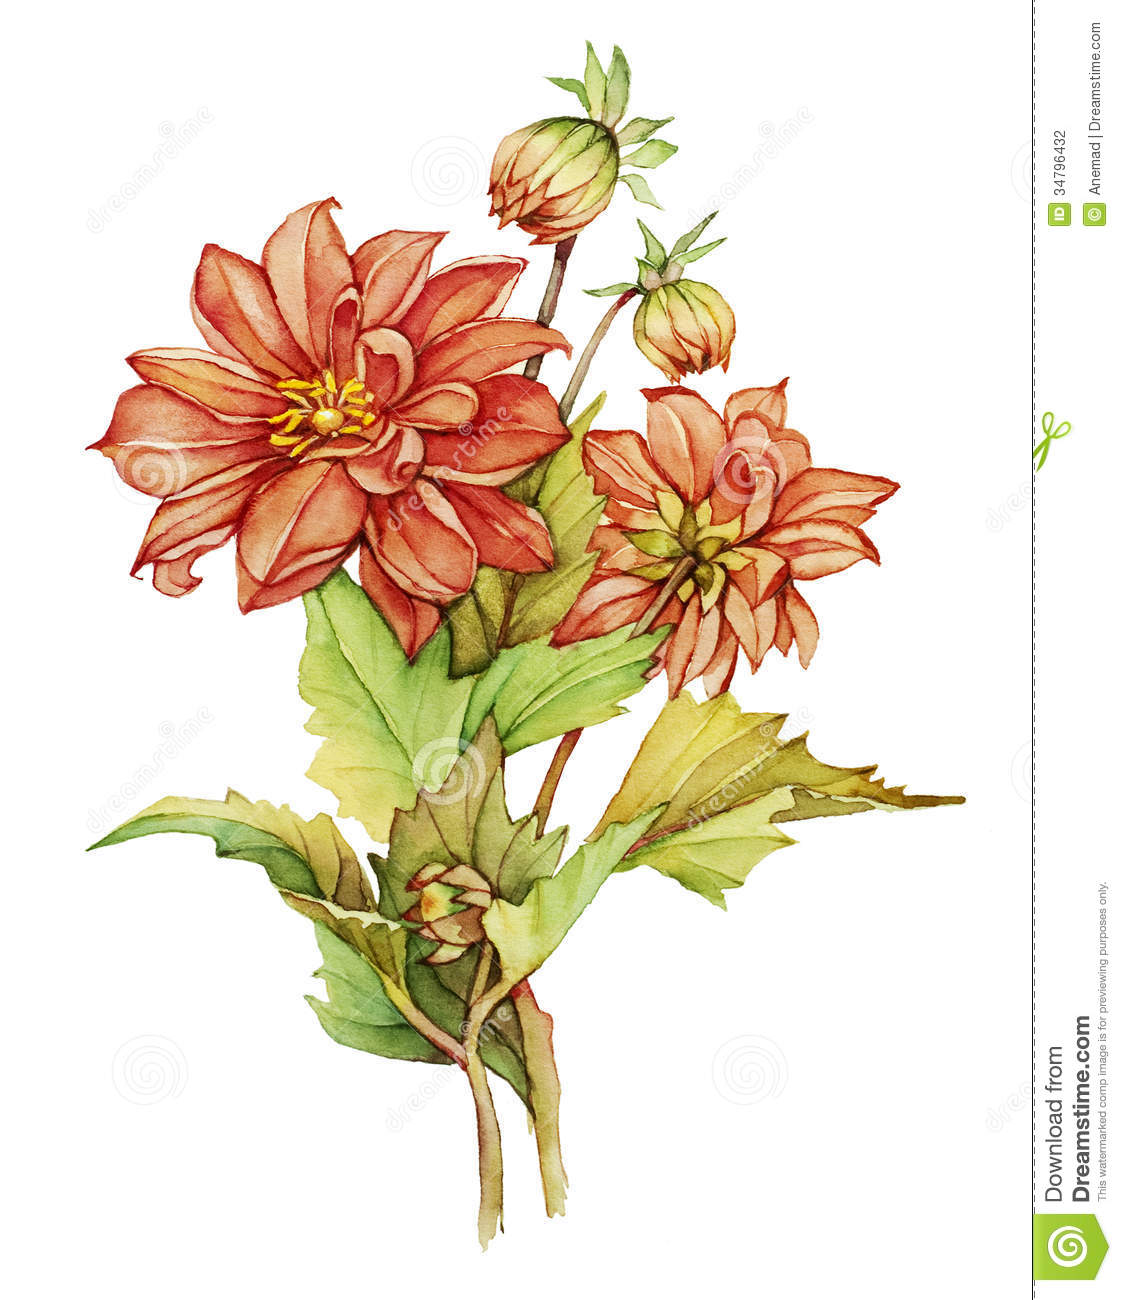 Dahlia stock illustration. Image of detail, flowers ...